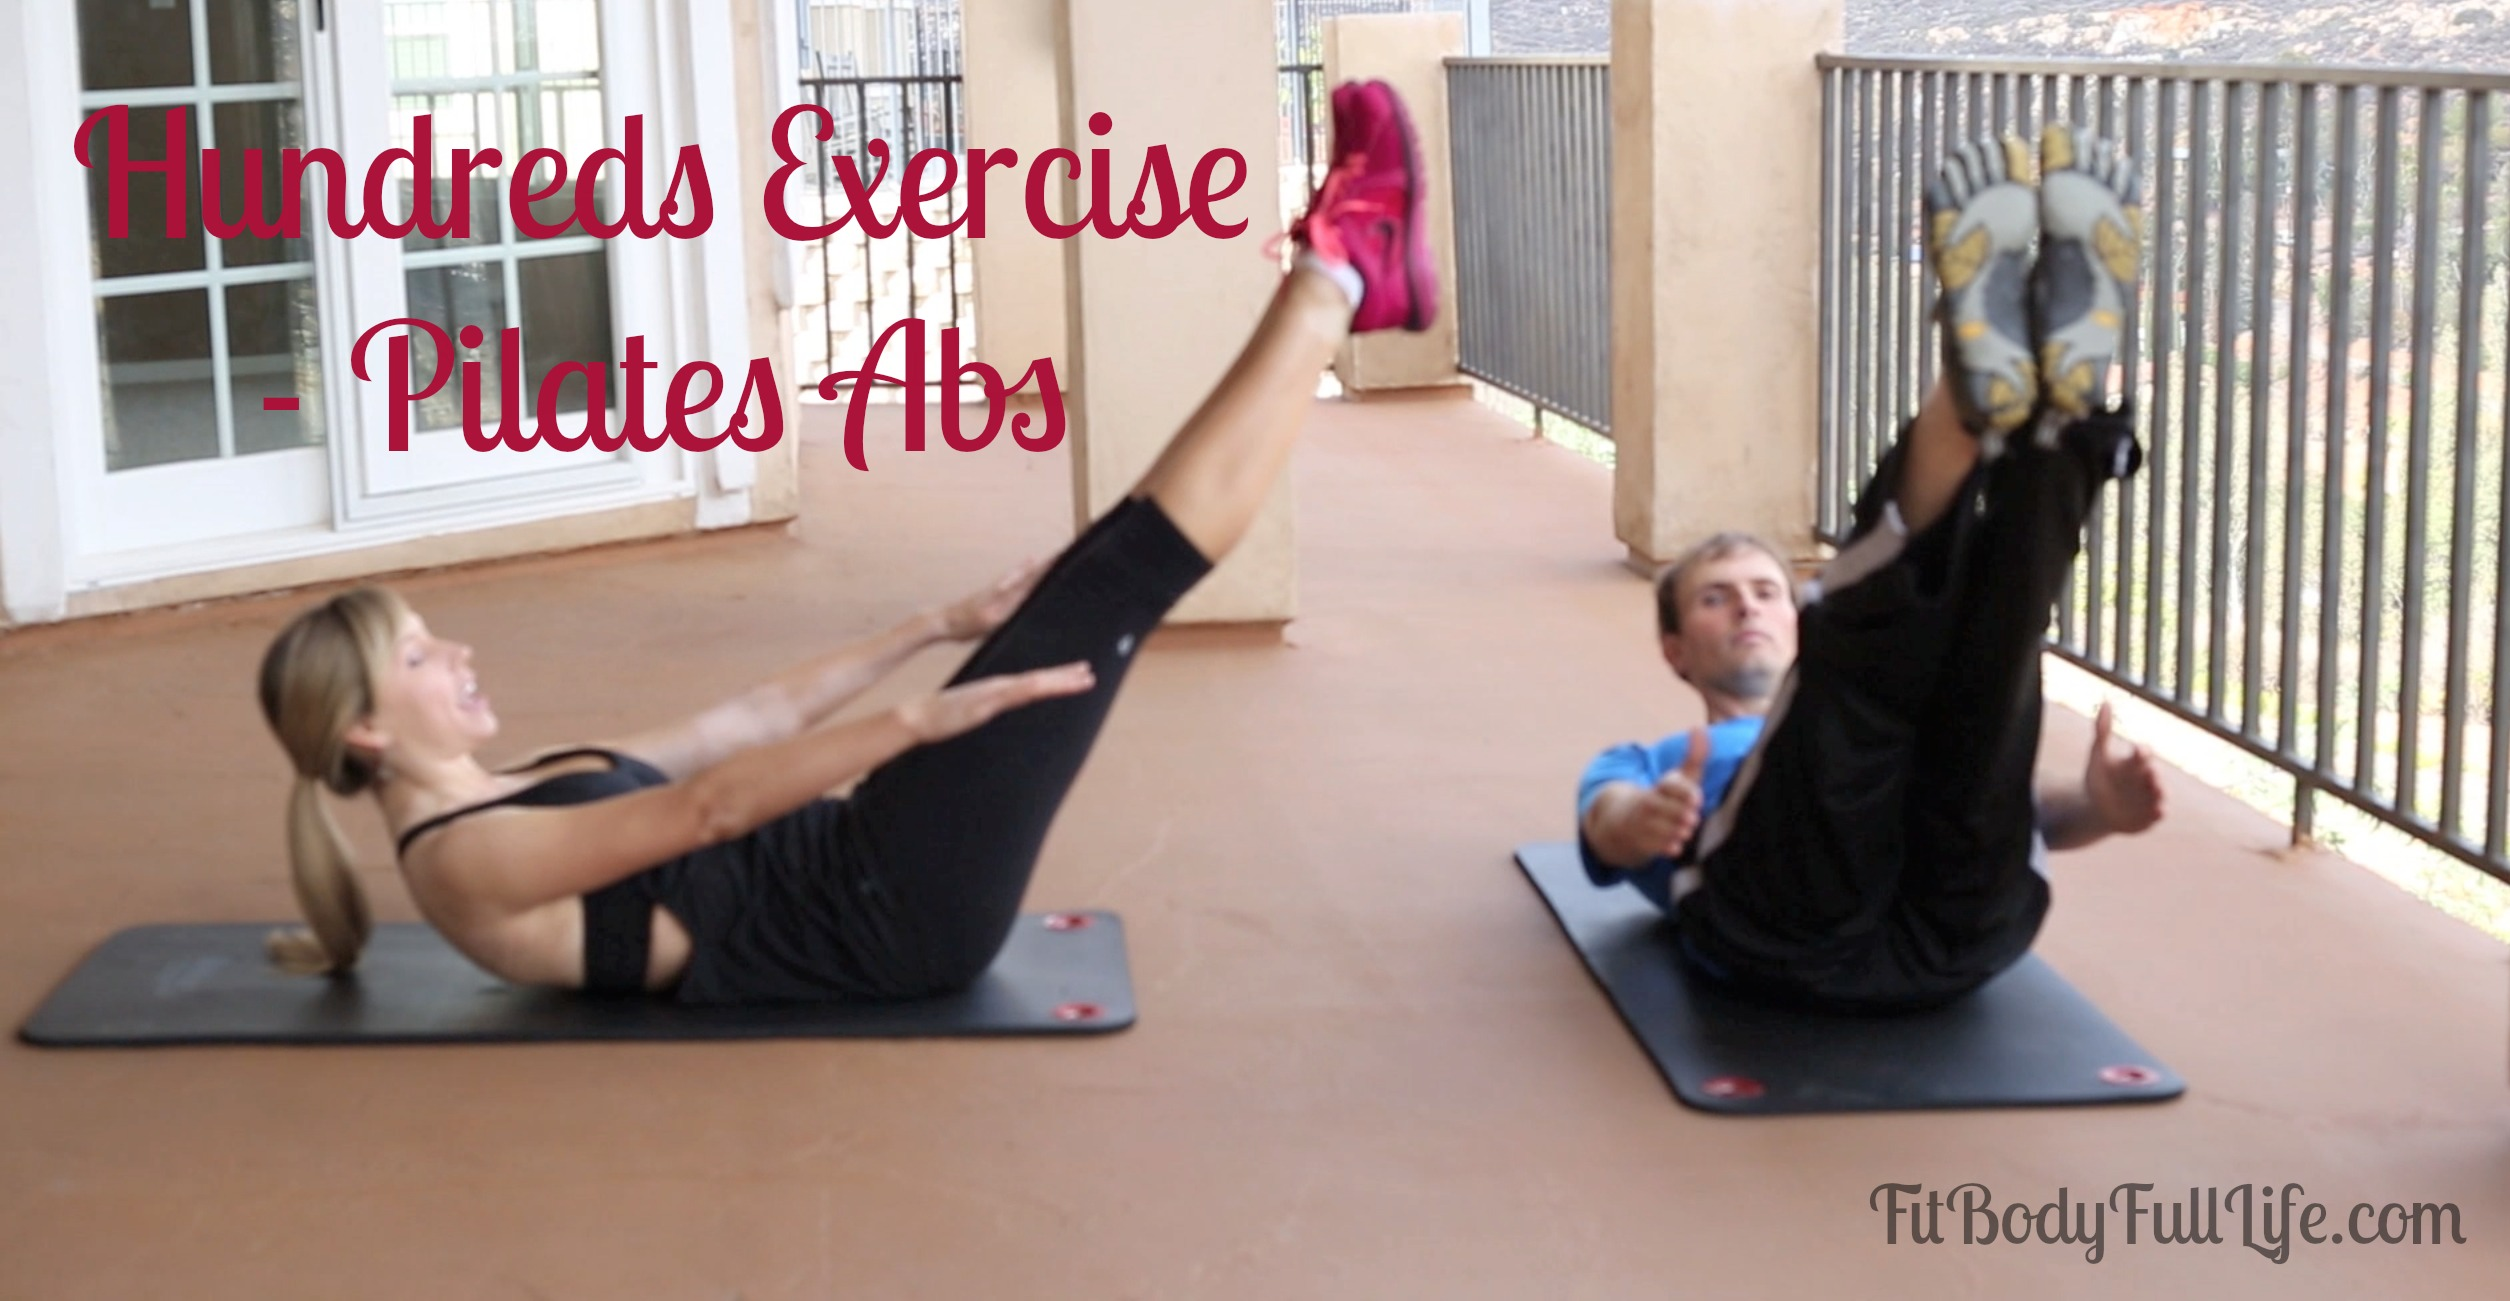 Hundreds Exercise Pilates Abs